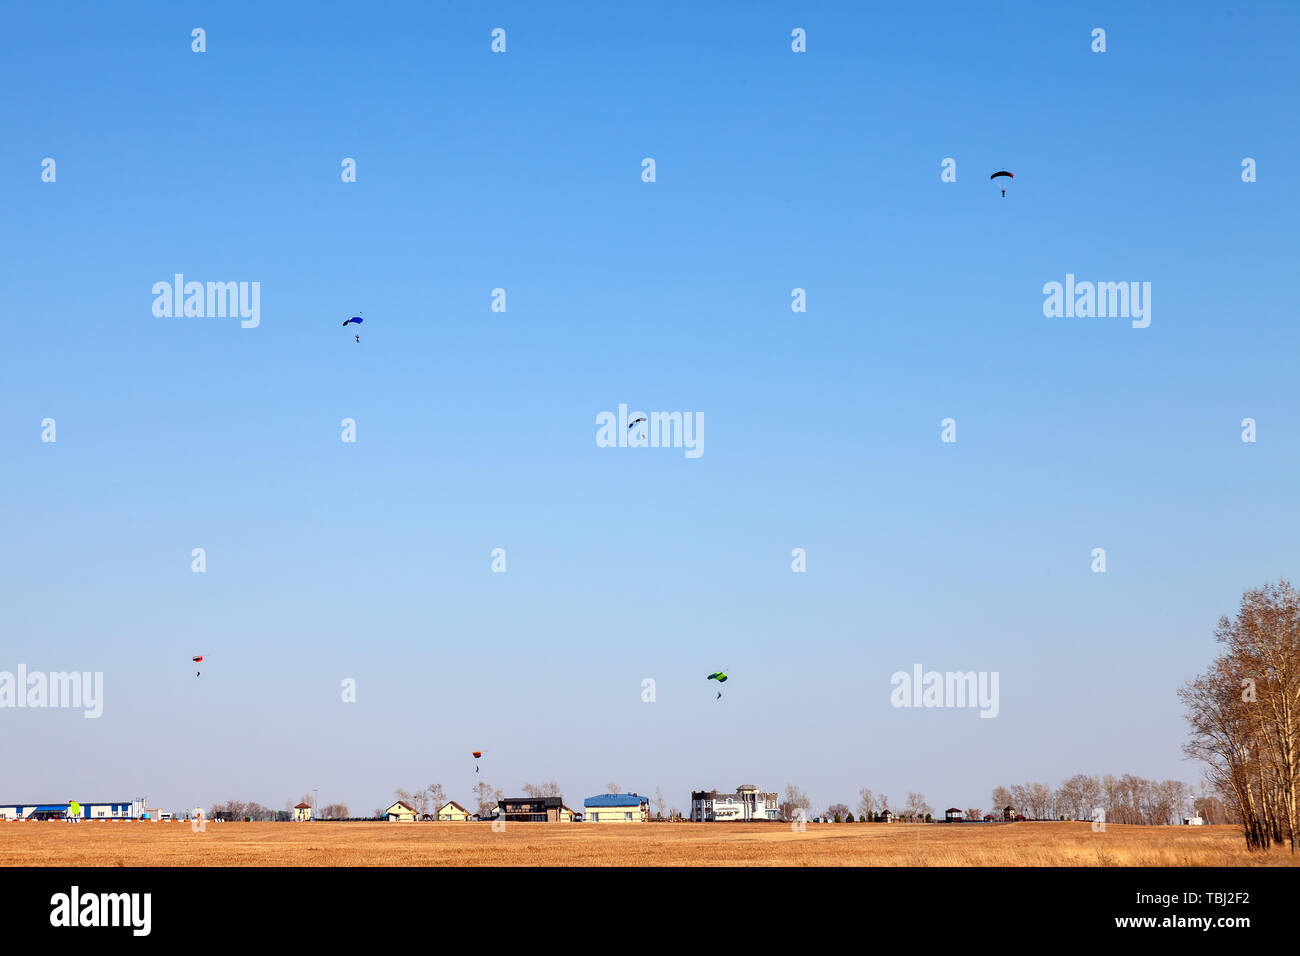 Six paratroopers paragliding landing on the yellow field during extreme sports and jumping from an airplane from a height in the blue sky over low hou Stock Photo